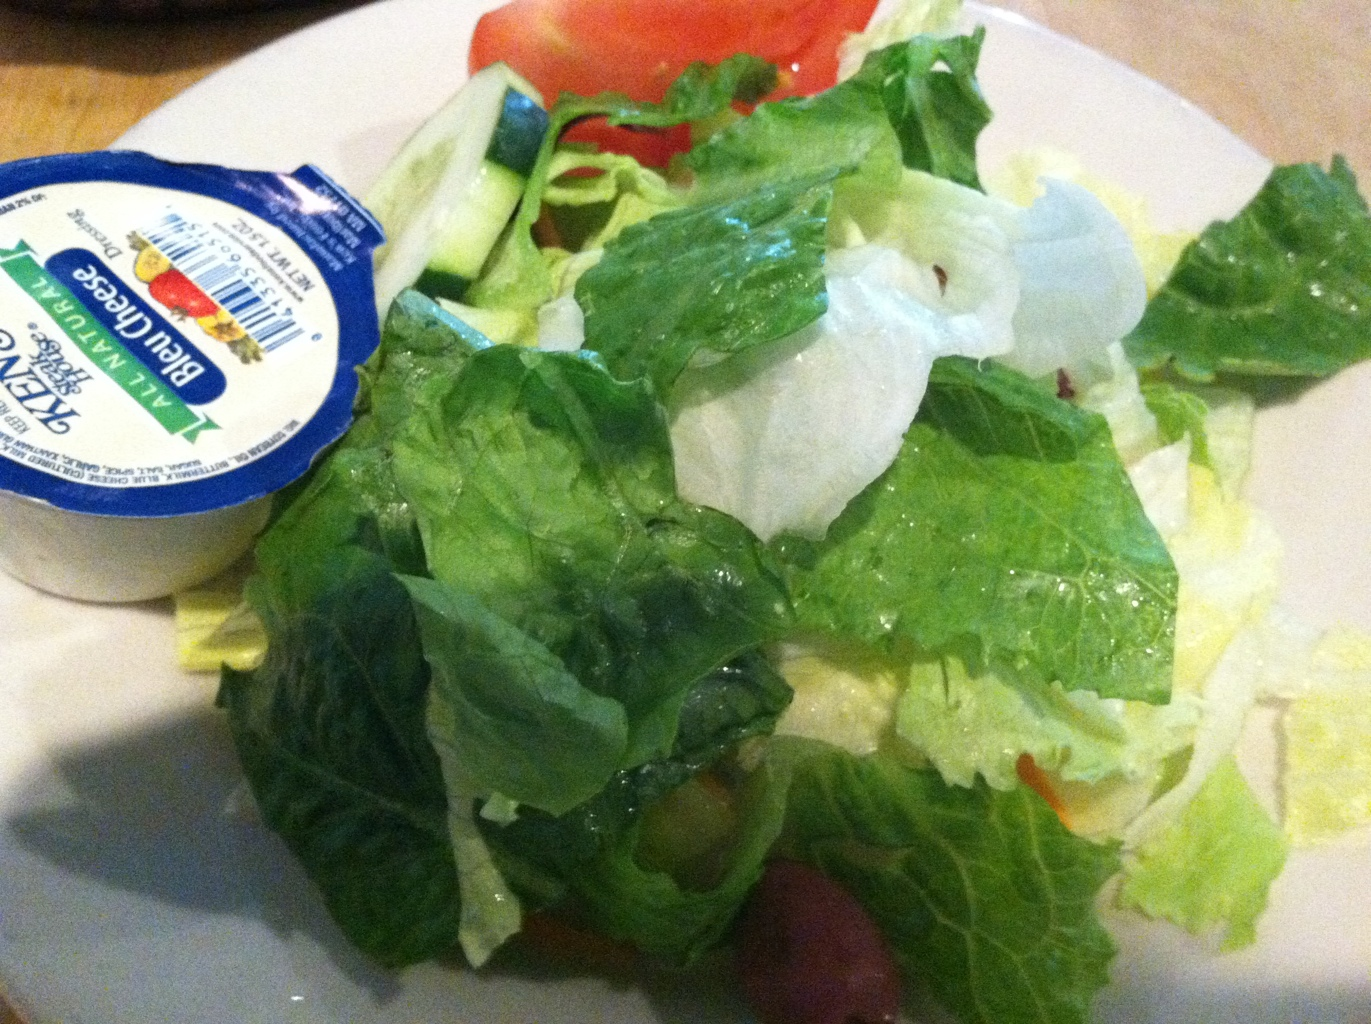 House Salad with Blue Cheese Dressing at Village Pizza and Pasta